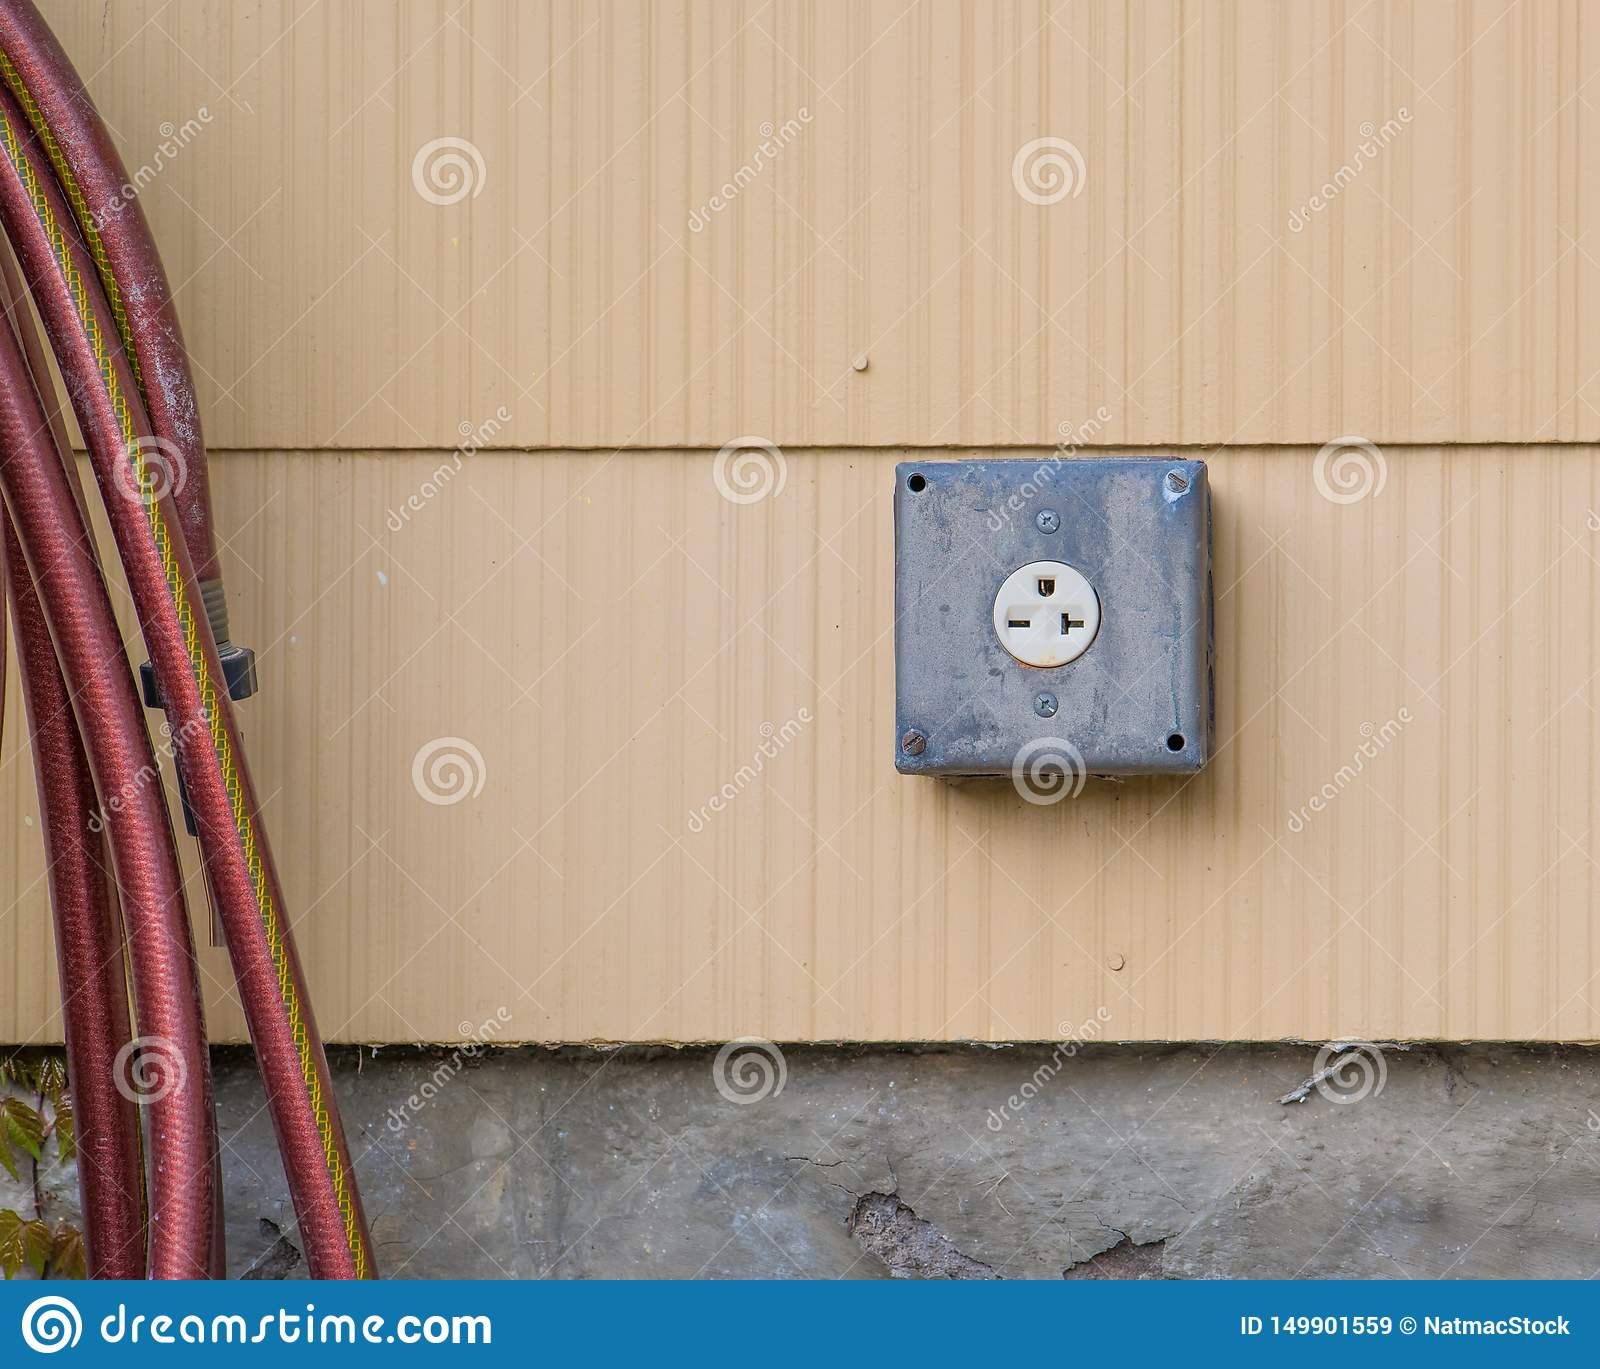 240 volt outlet on exterior of house